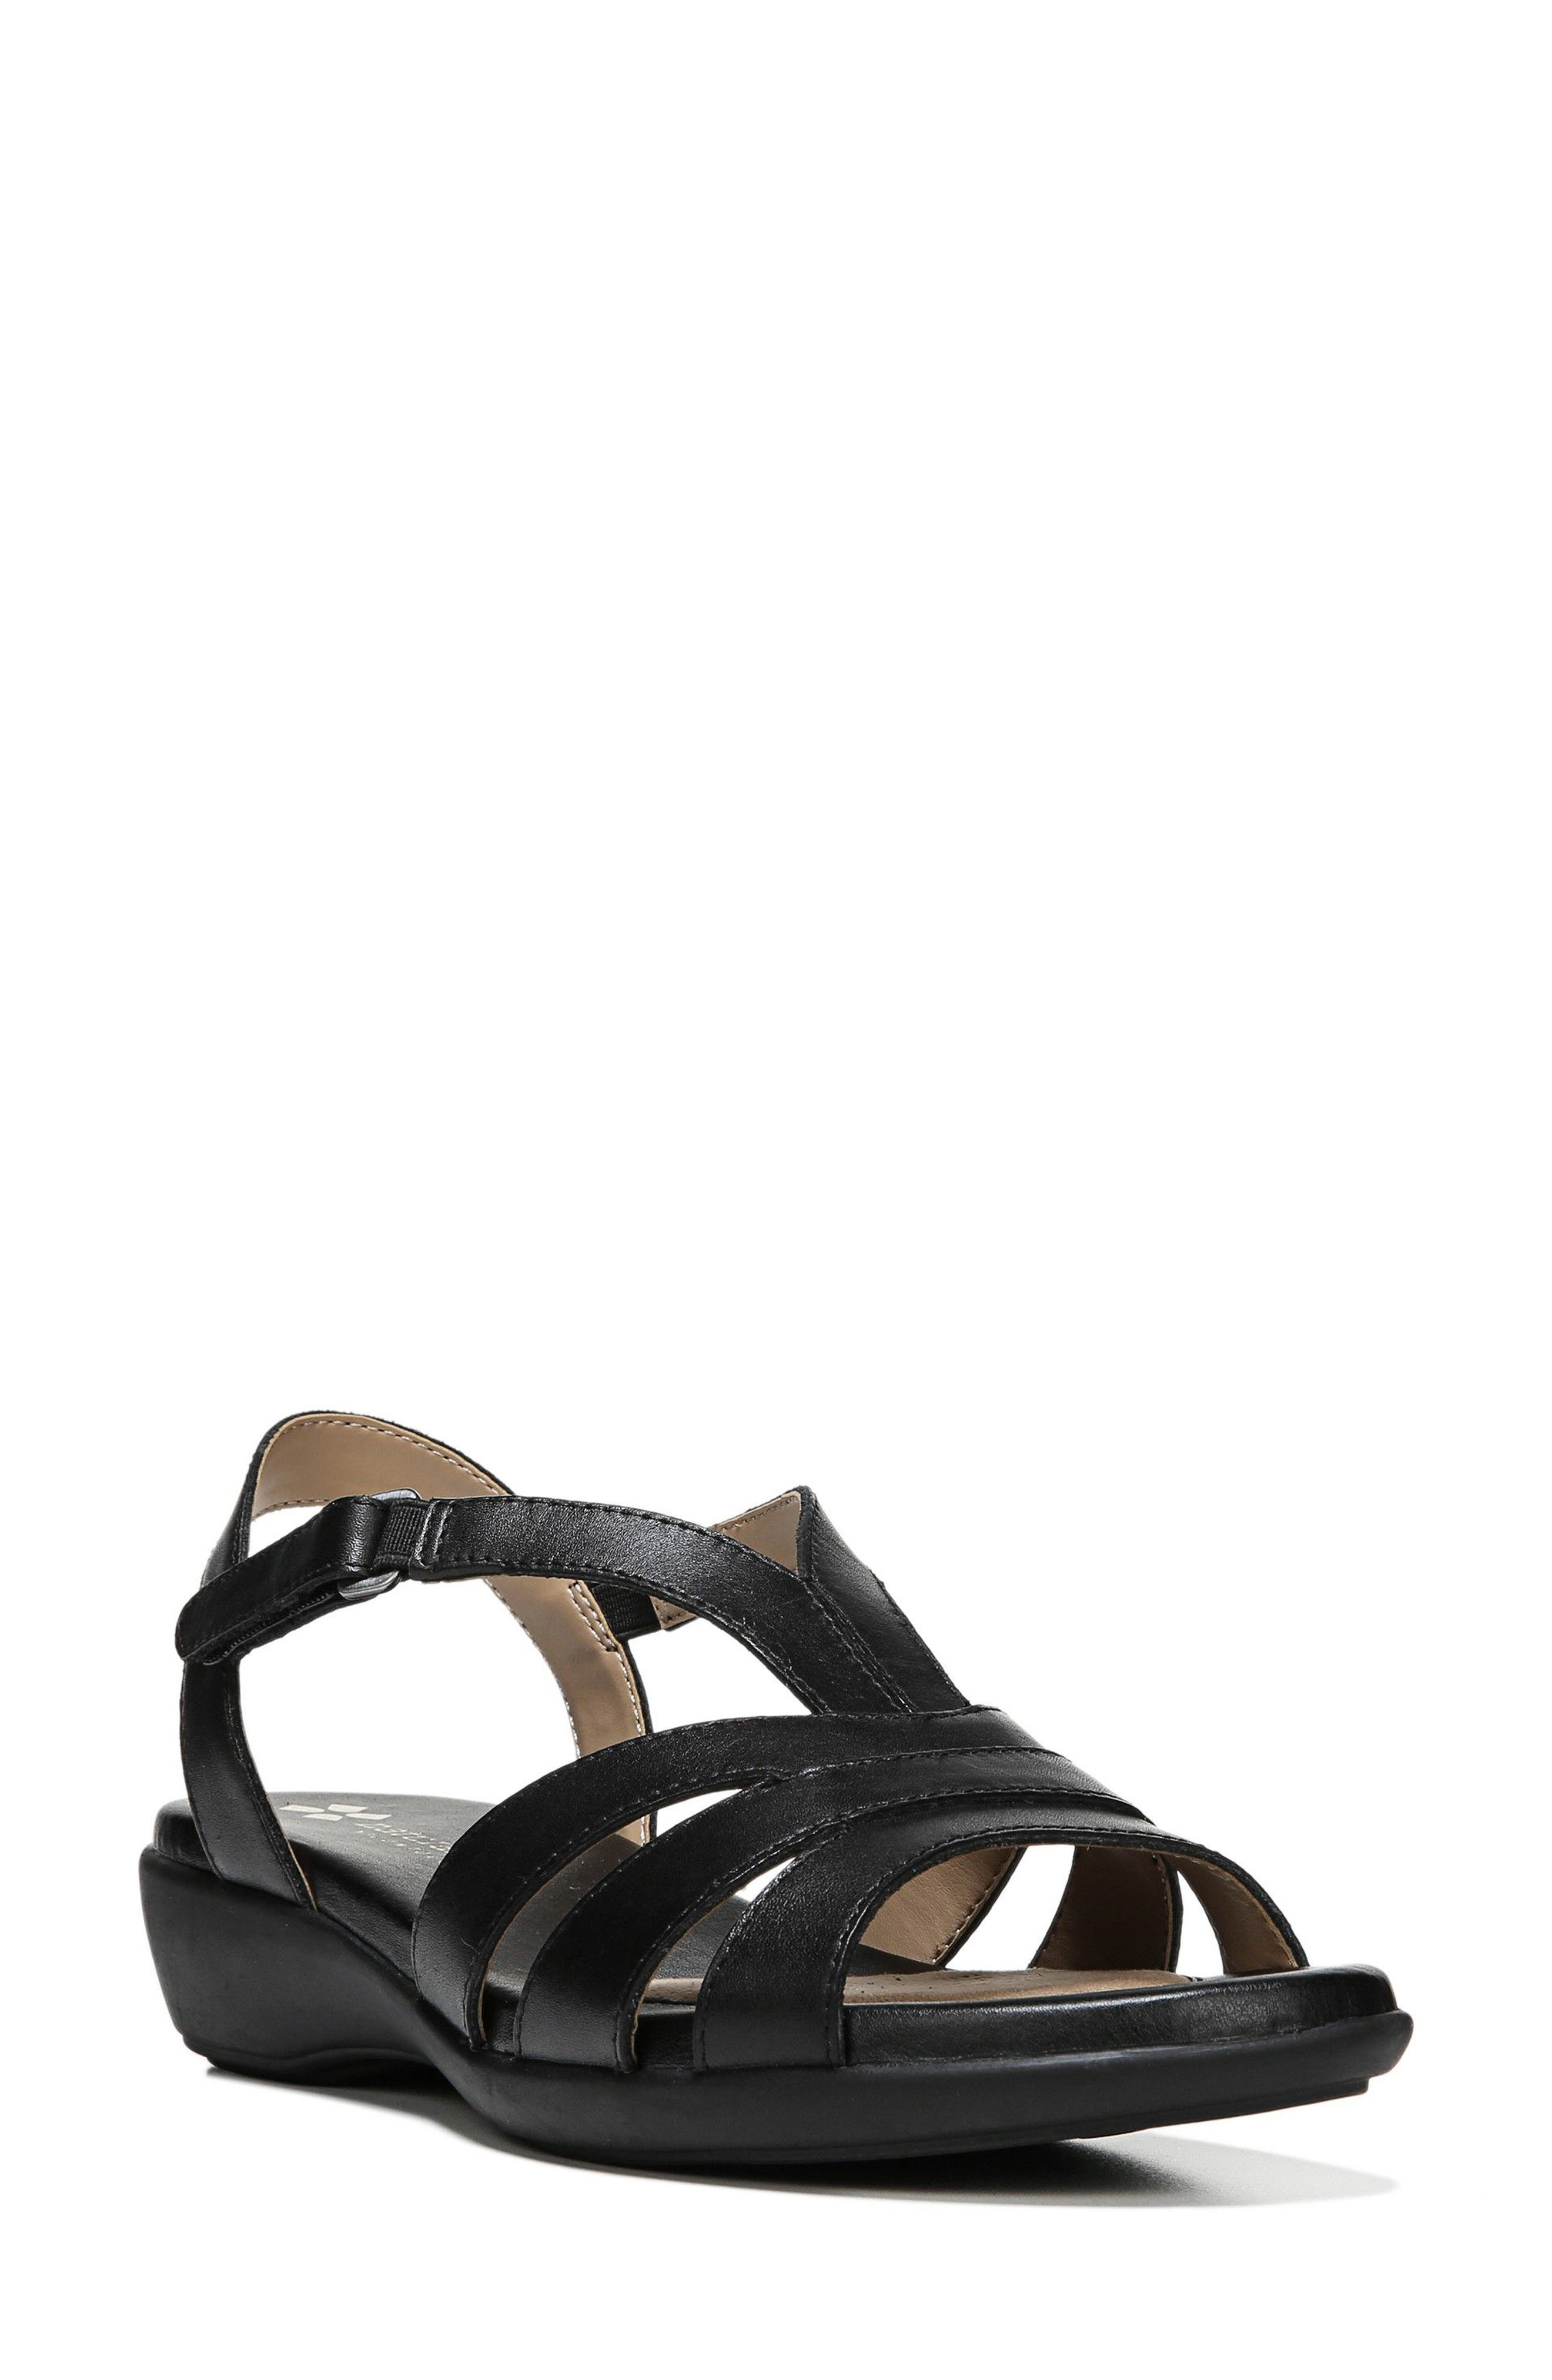 Neina Sandal,                         Main,                         color, 001